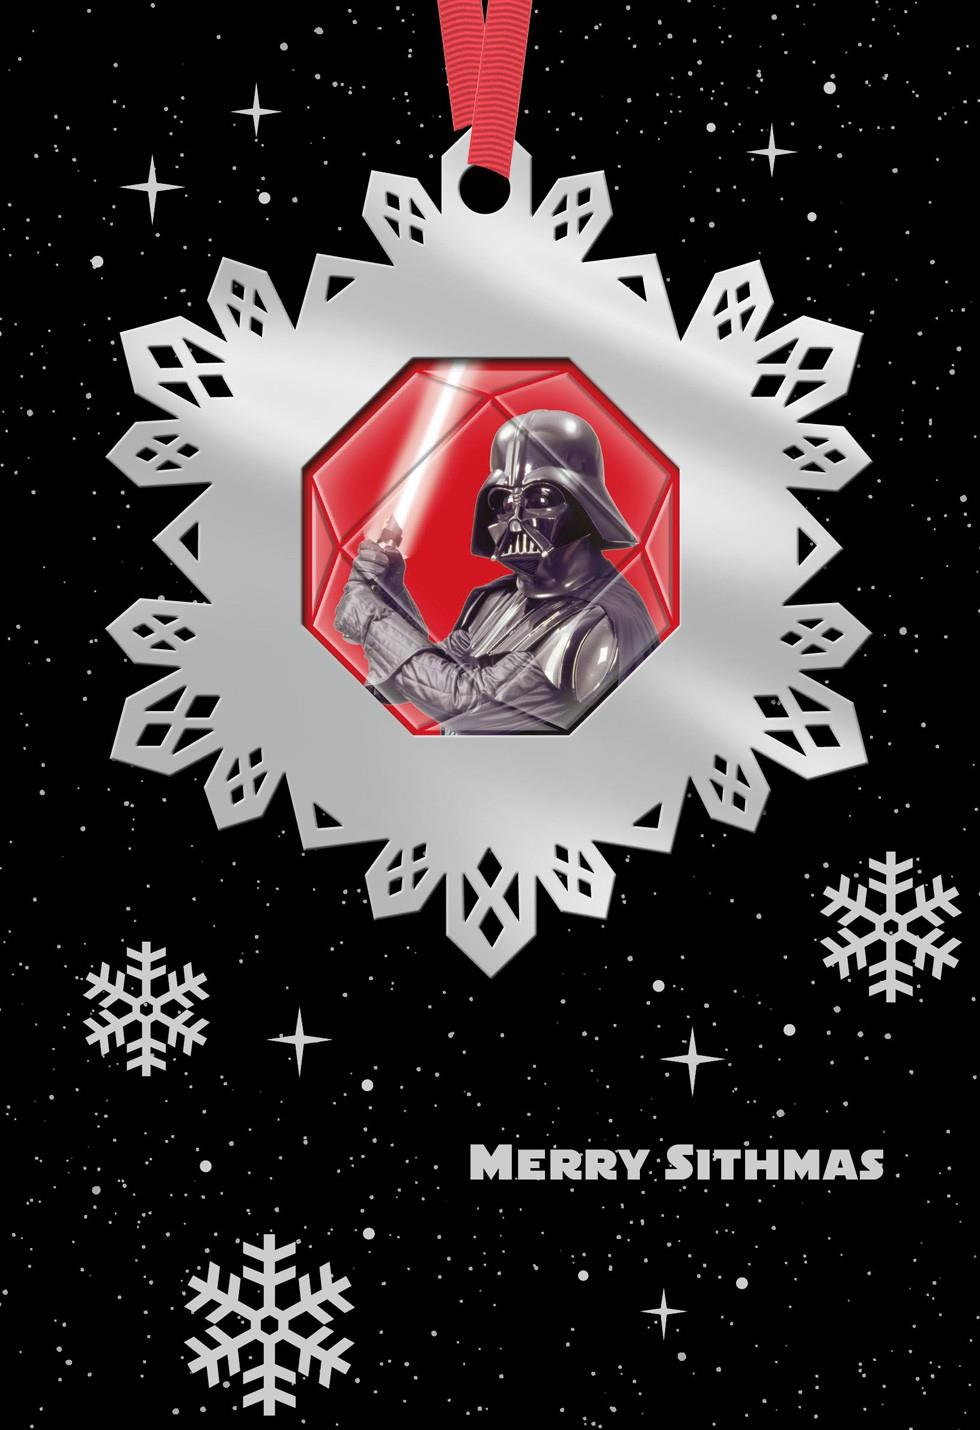 Star Wars A Day To Remember Christmas Card With Ornament